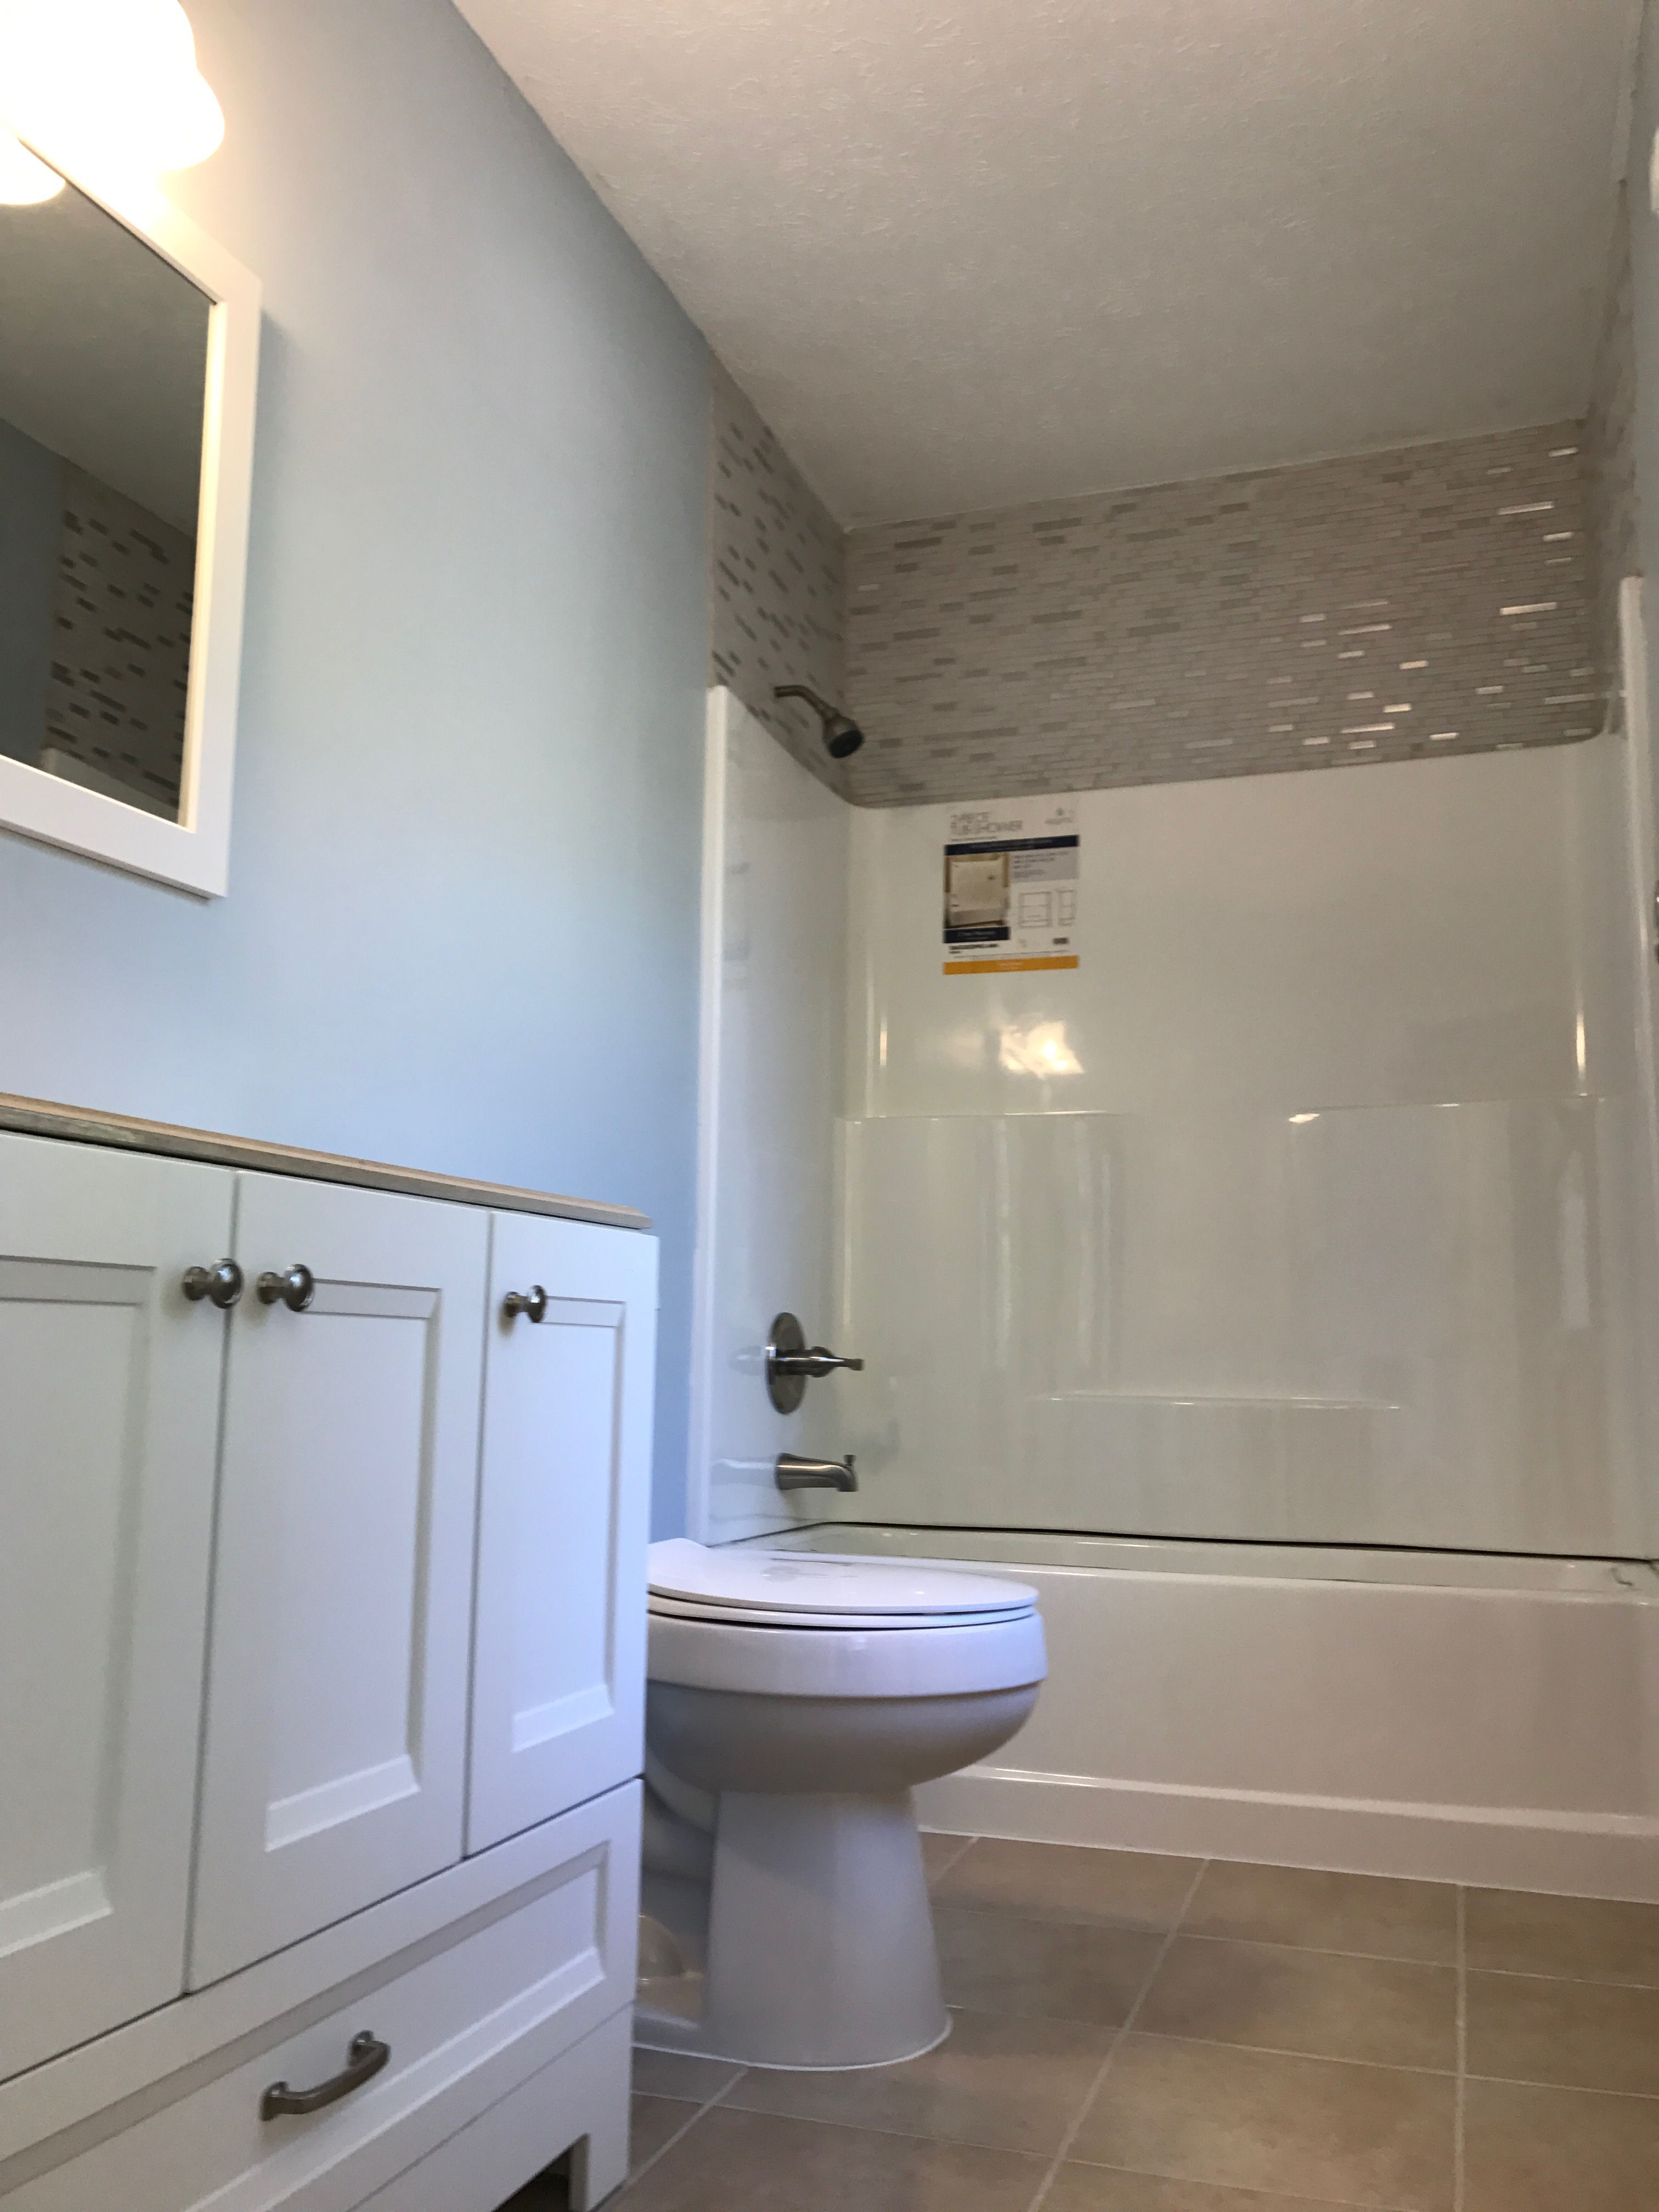 Using glass tile above the tub in a small dark bathroom provides a